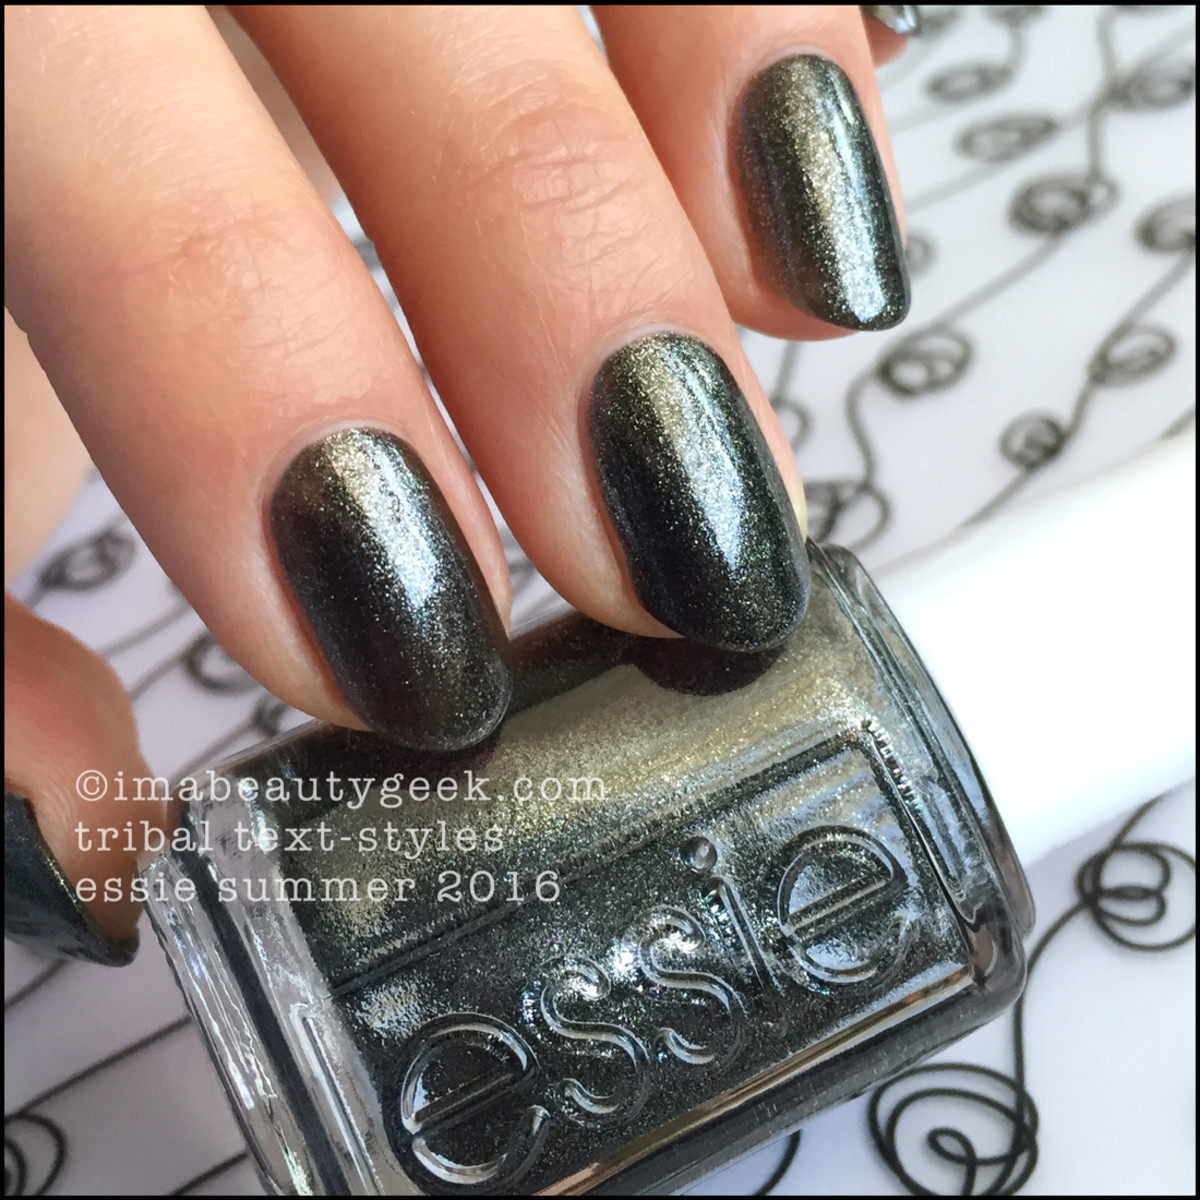 Essie Tribal Text Styles_Essie Summer 2016 Review Swatches